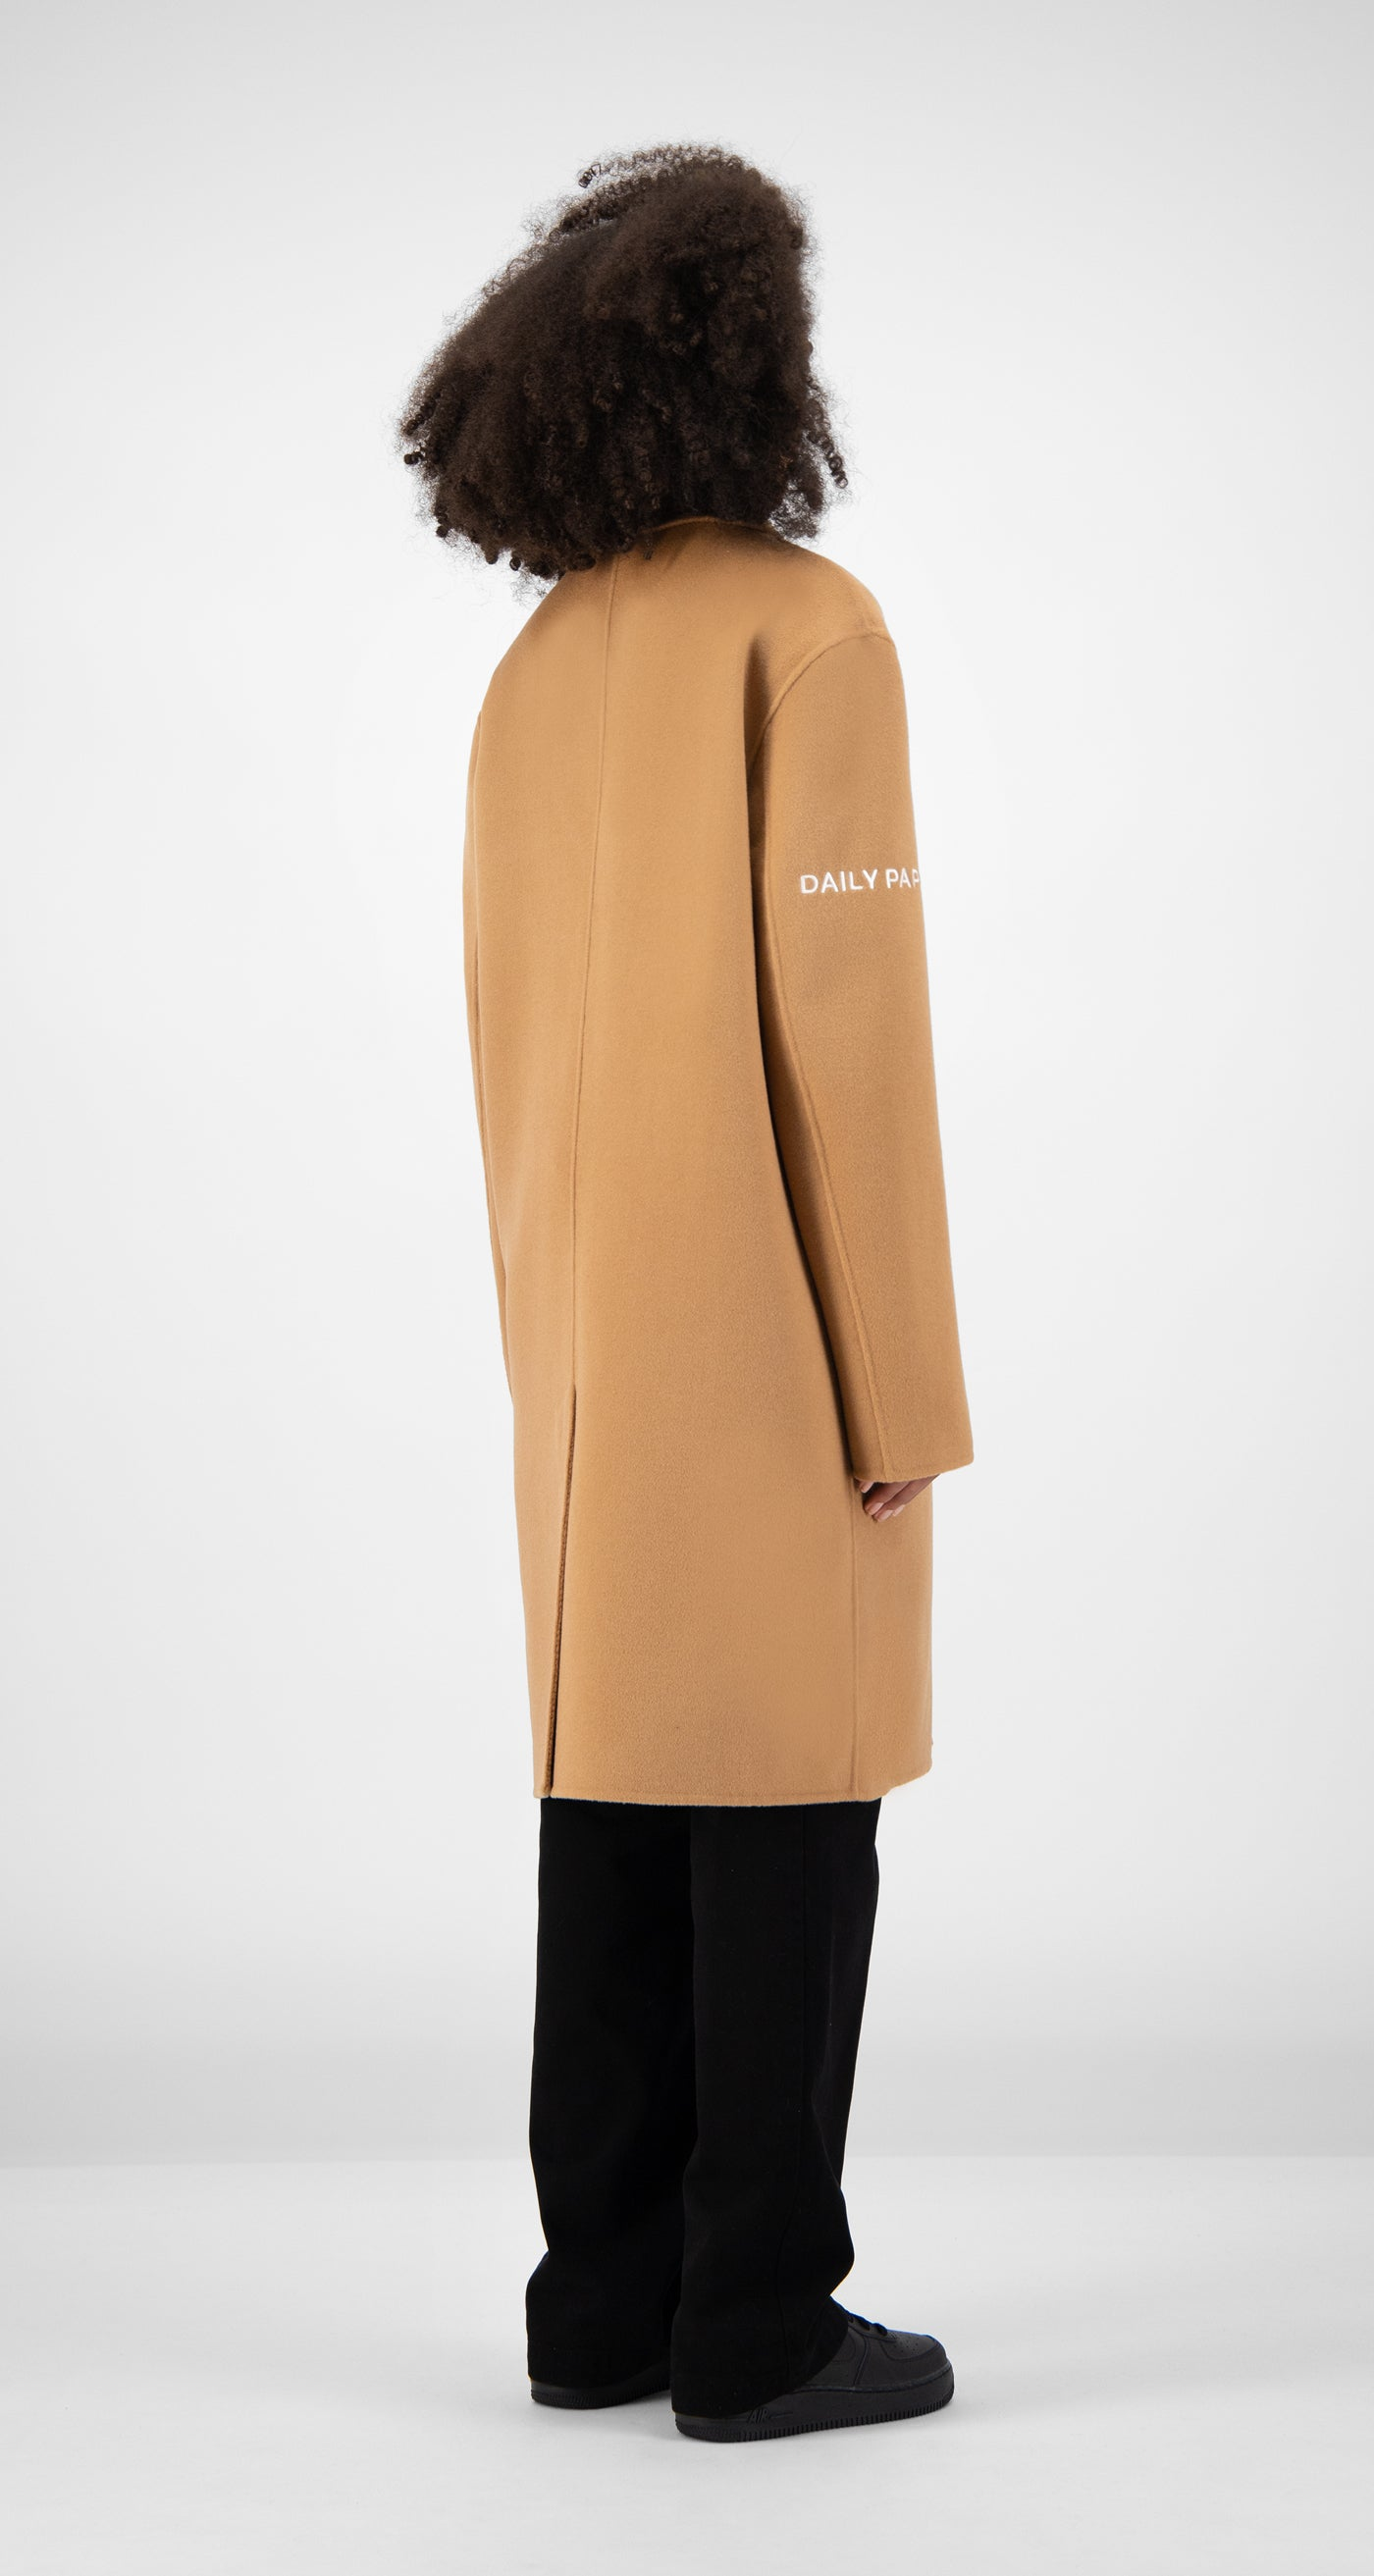 Daily Paper - Camel Wool Captain Coat Women